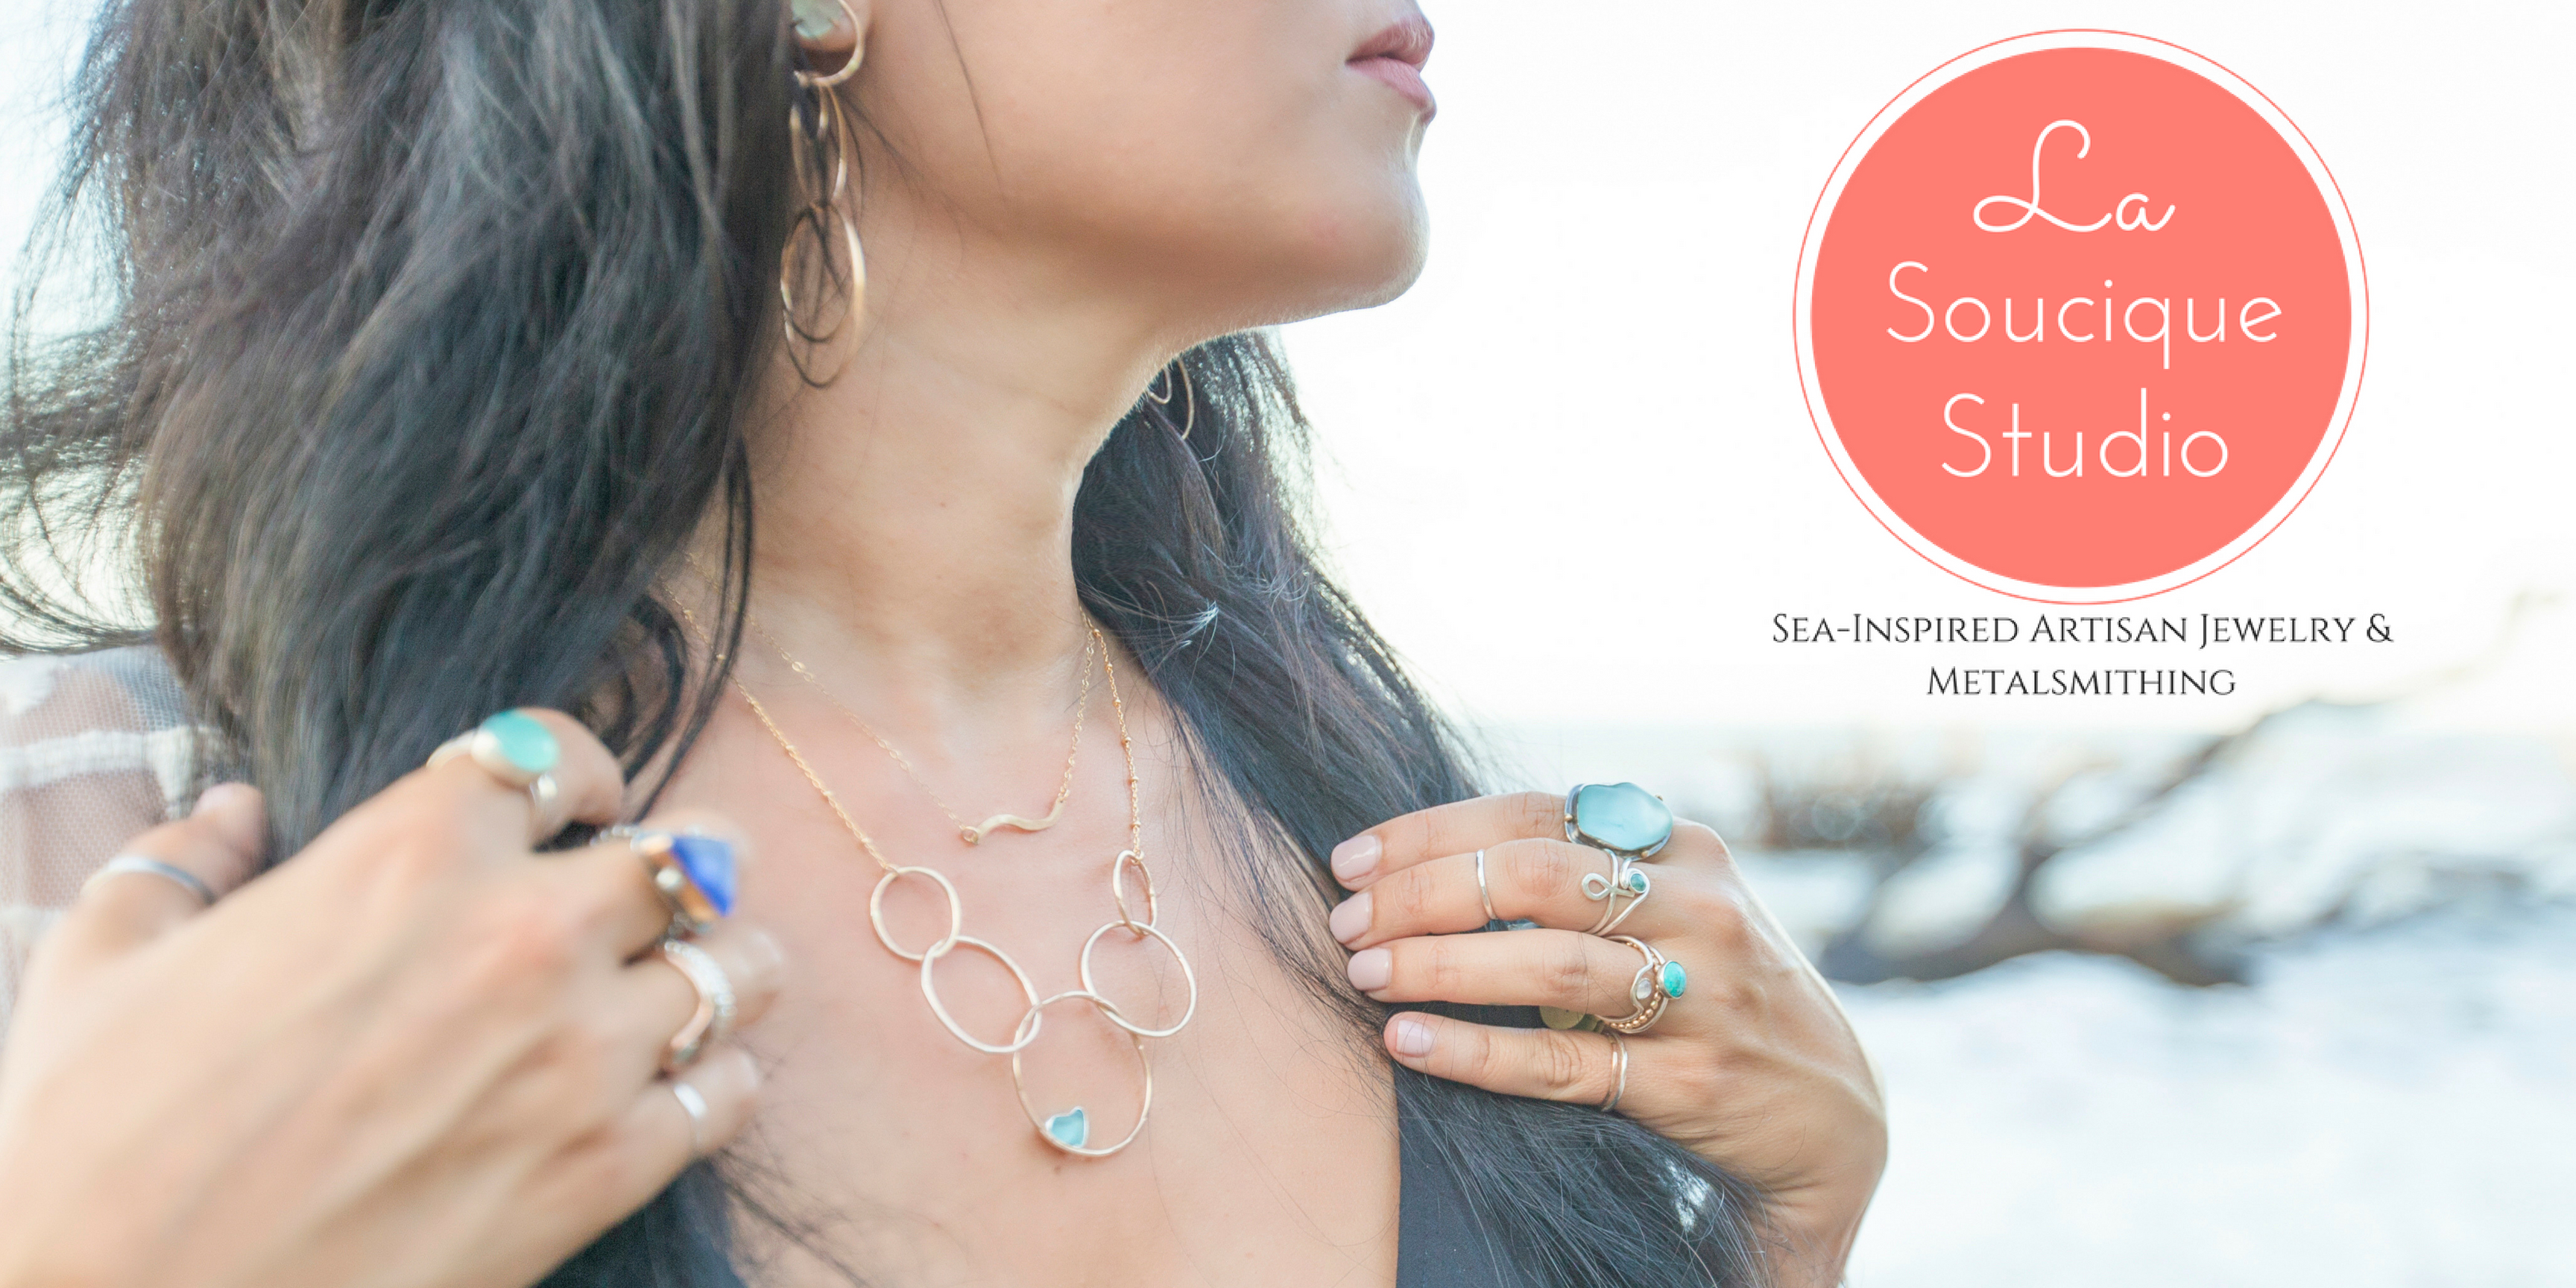 La Soucique Studio Sea-Inspired Jewelry & Metalsmithing